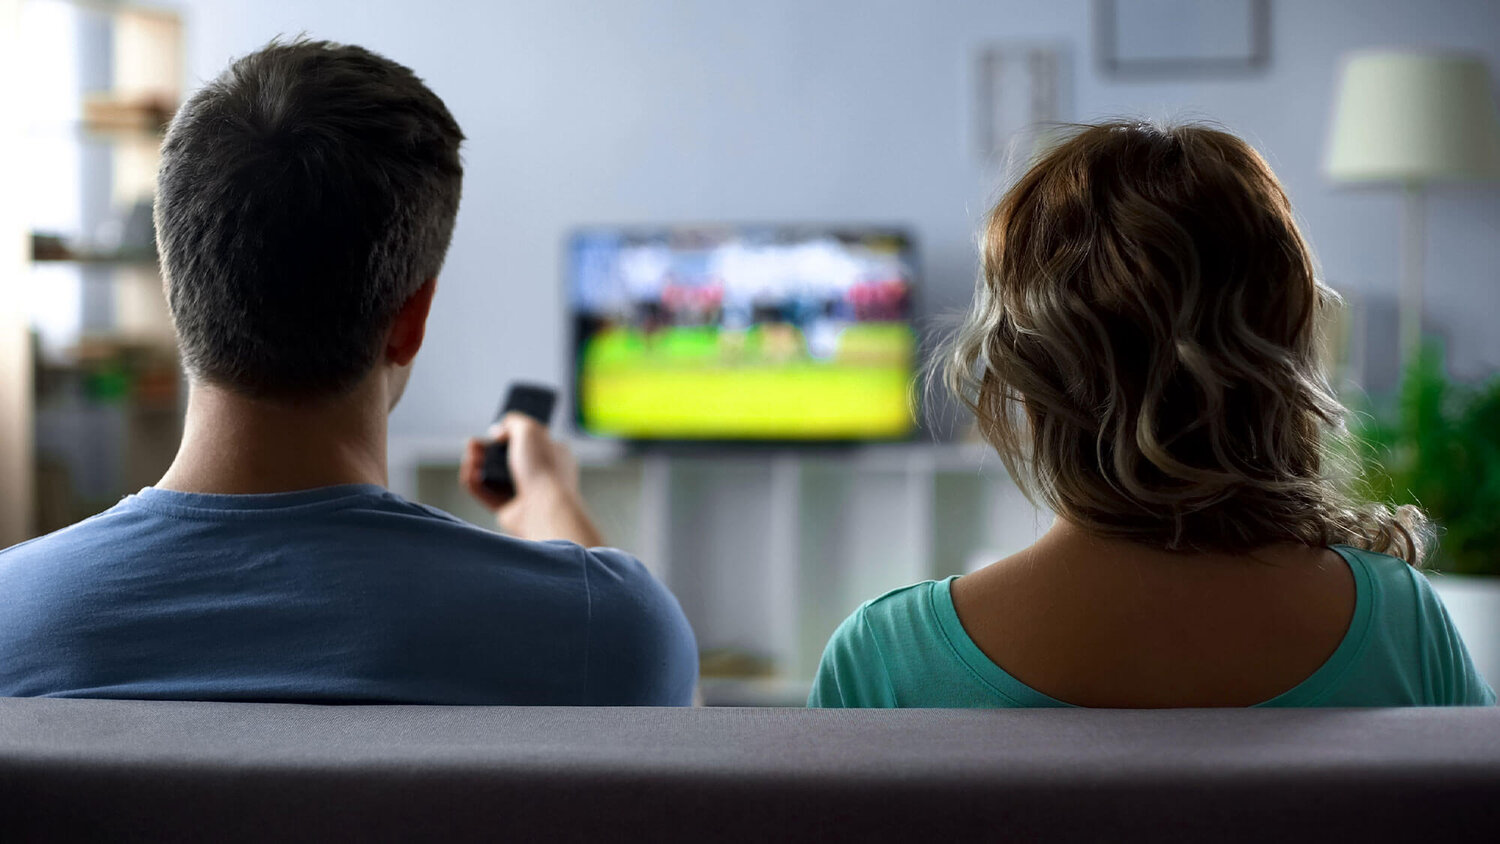 IPTV terms everyone should know for a better understanding of the system